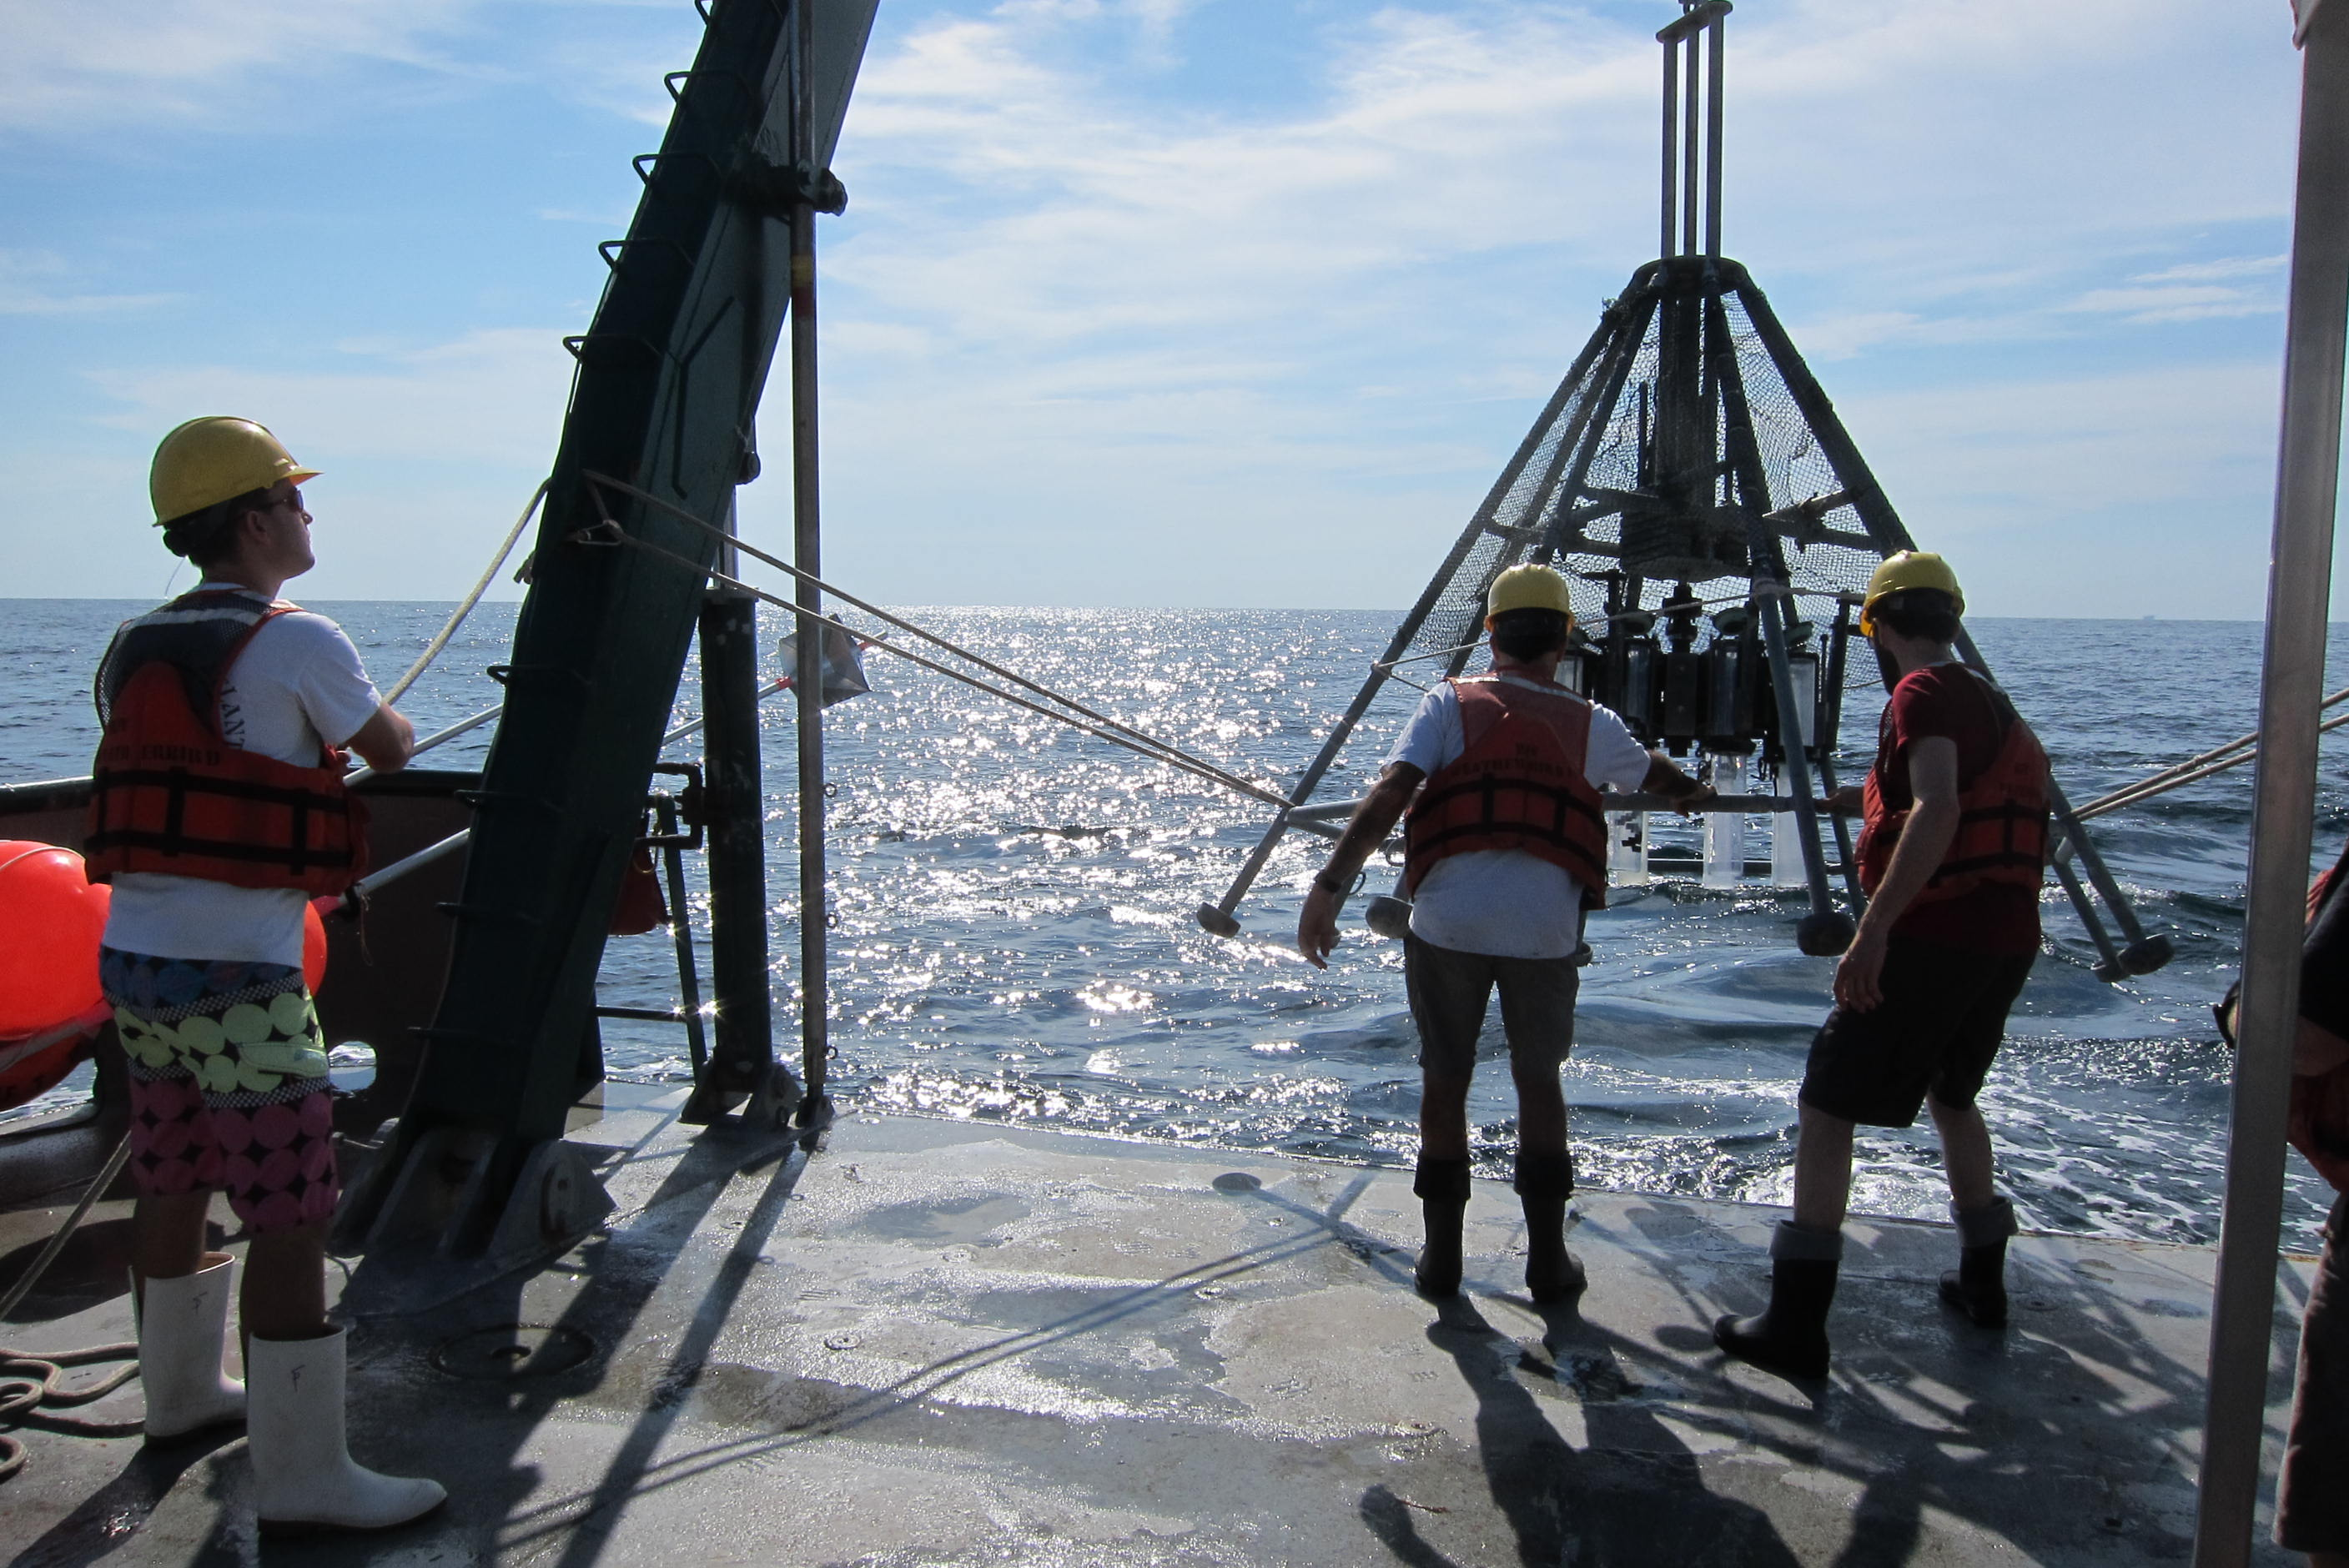 Caption: Researchers prepare to take samples of the ocean floor using a multicore device.